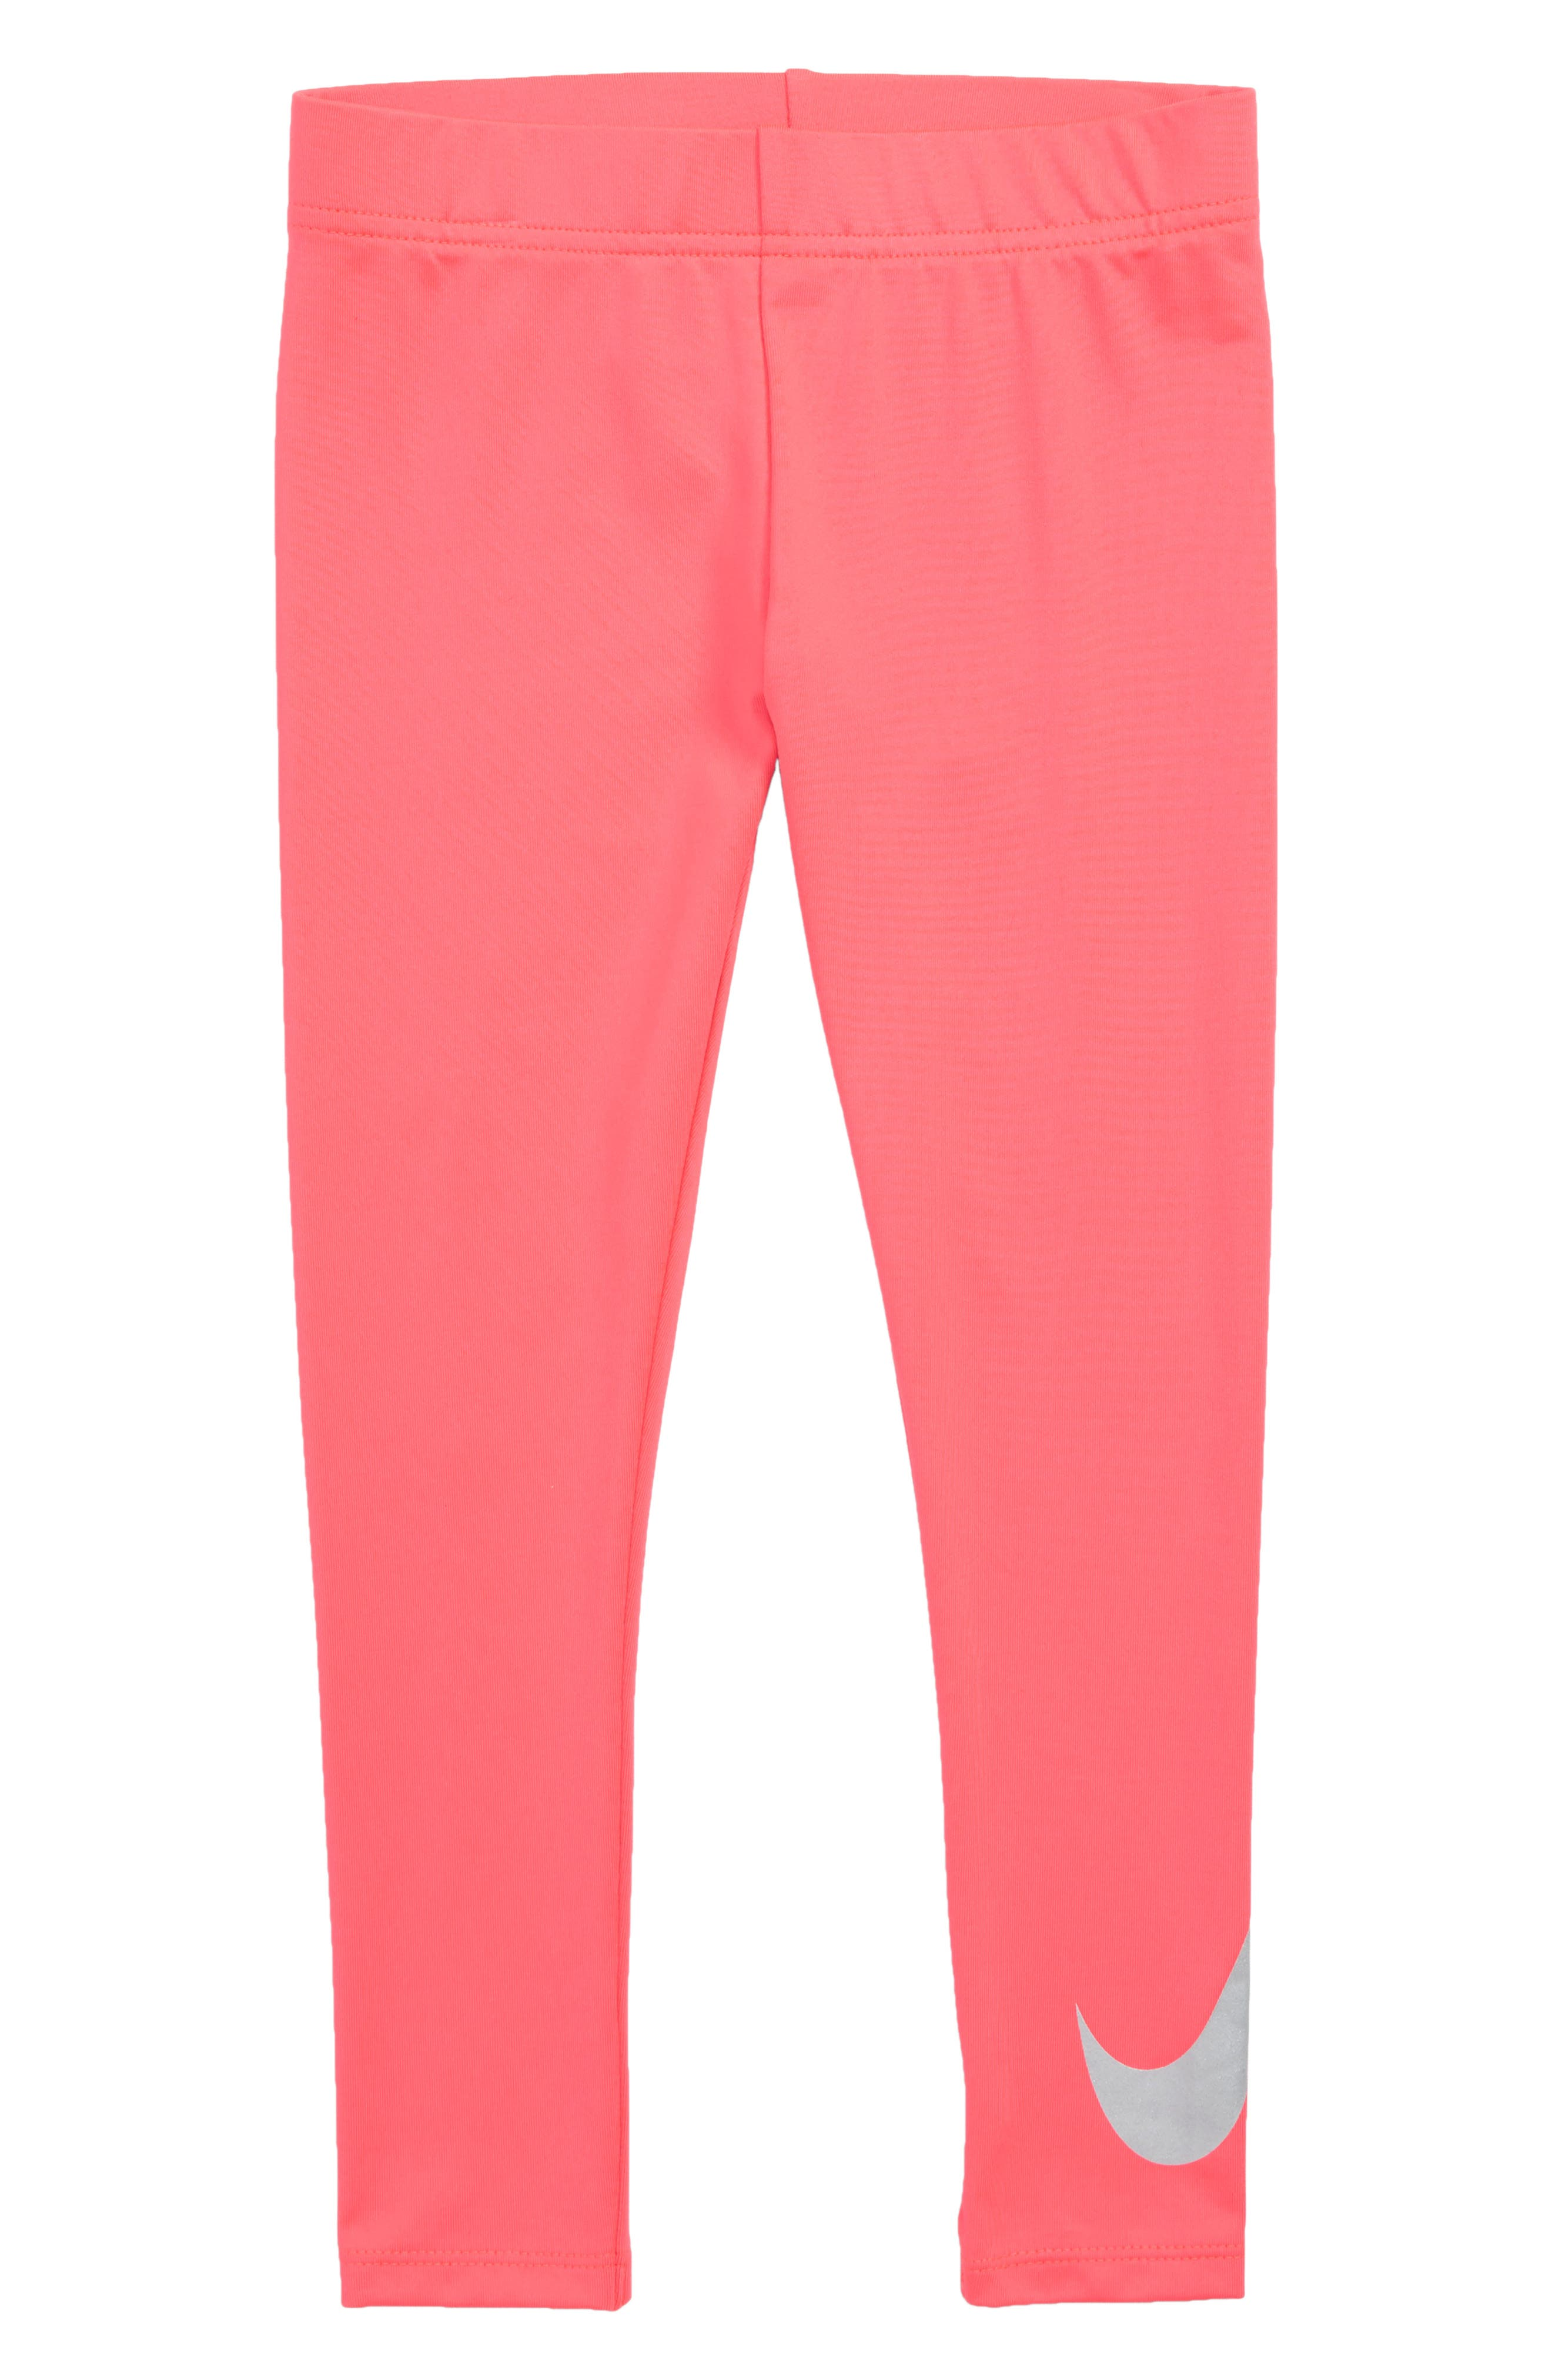 Dry Iridescent Leggings,                         Main,                         color, RACER PINK